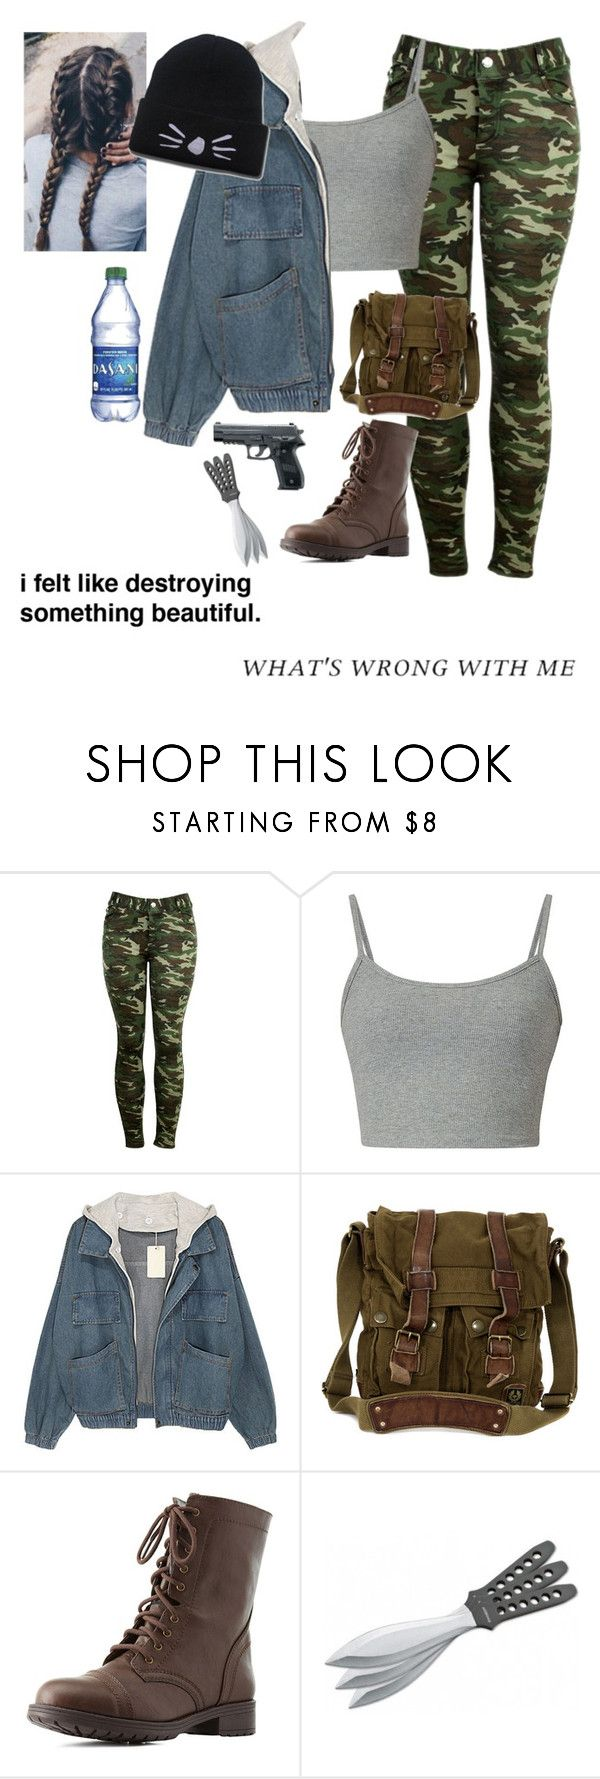 """Untitled #468"" by princessmaniac-5sos ❤ liked on Polyvore featuring Belstaff, Charlotte Russe and Böker"